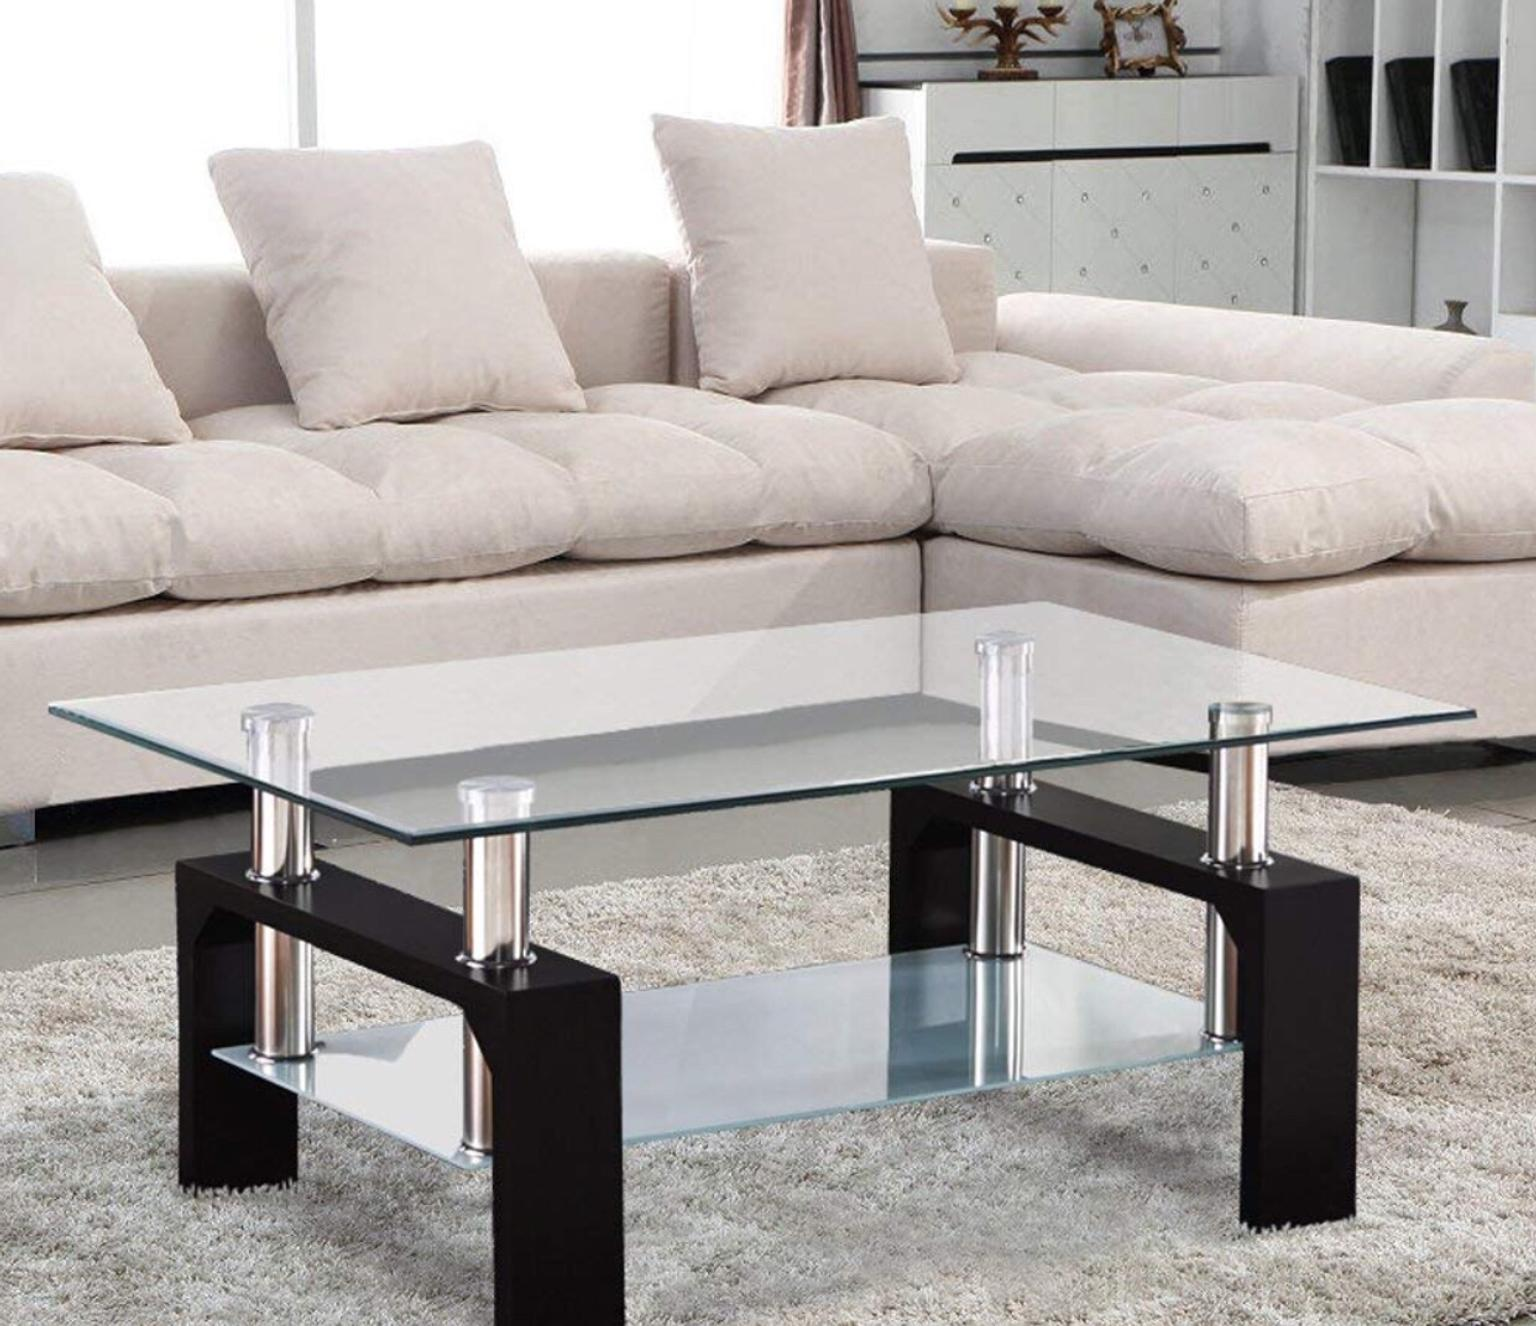 Coffee Table Glass Chrome Wood In W8 Chelsea For 40 00 For Sale Shpock